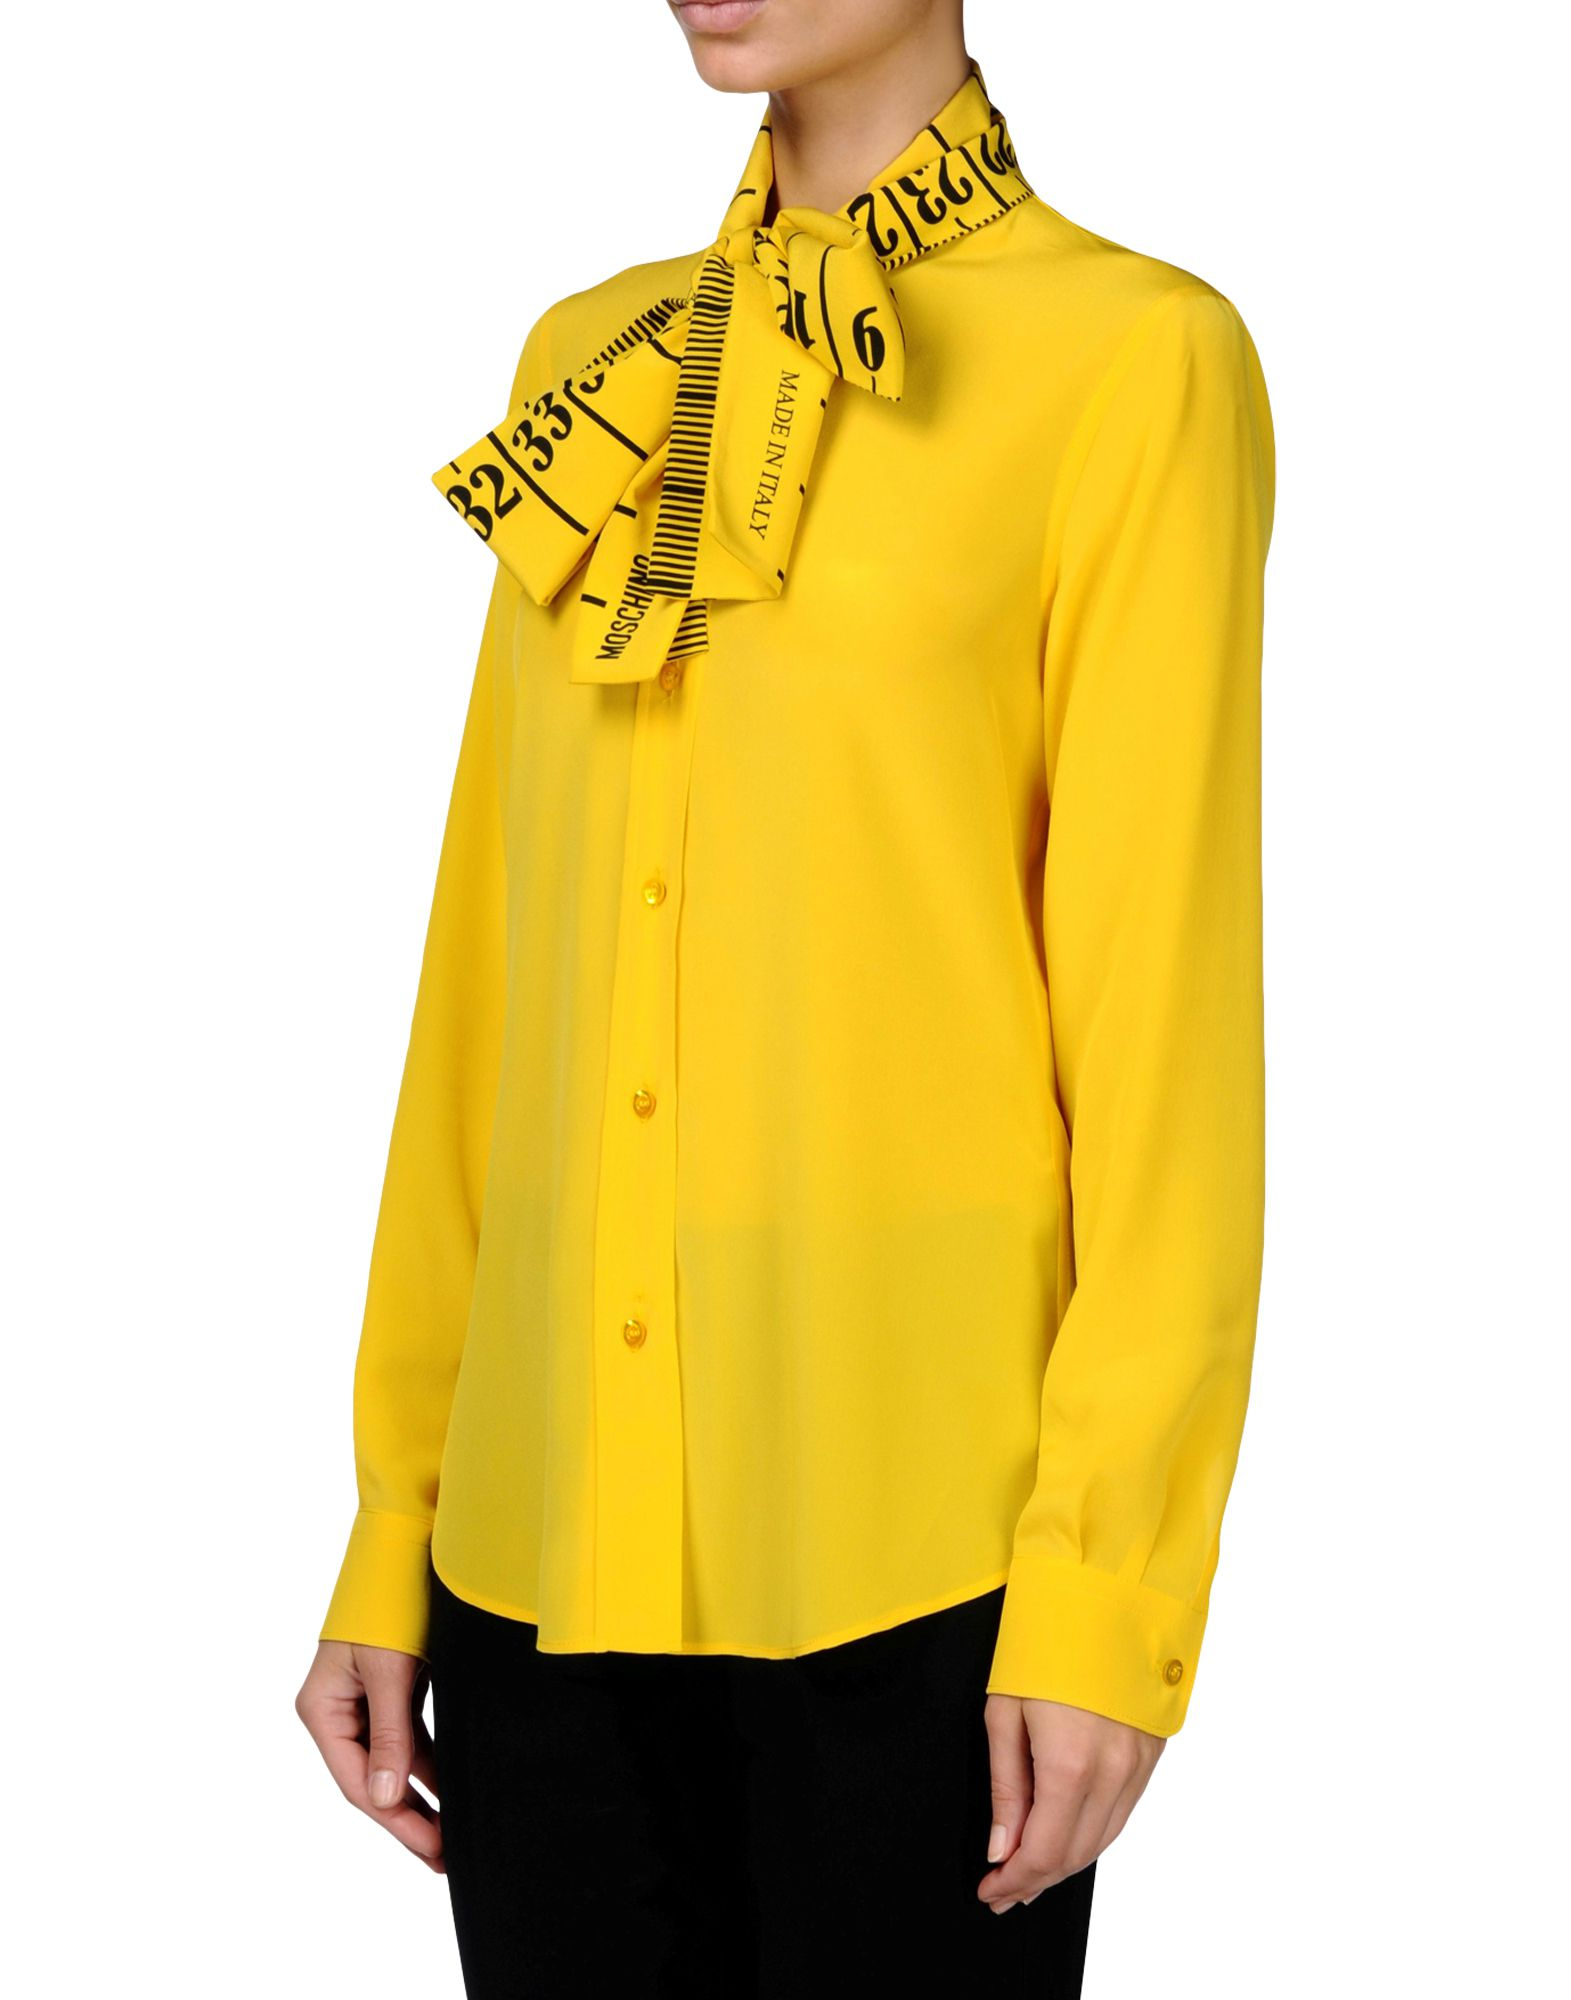 Moschino Long Sleeve Shirt In Yellow Lyst